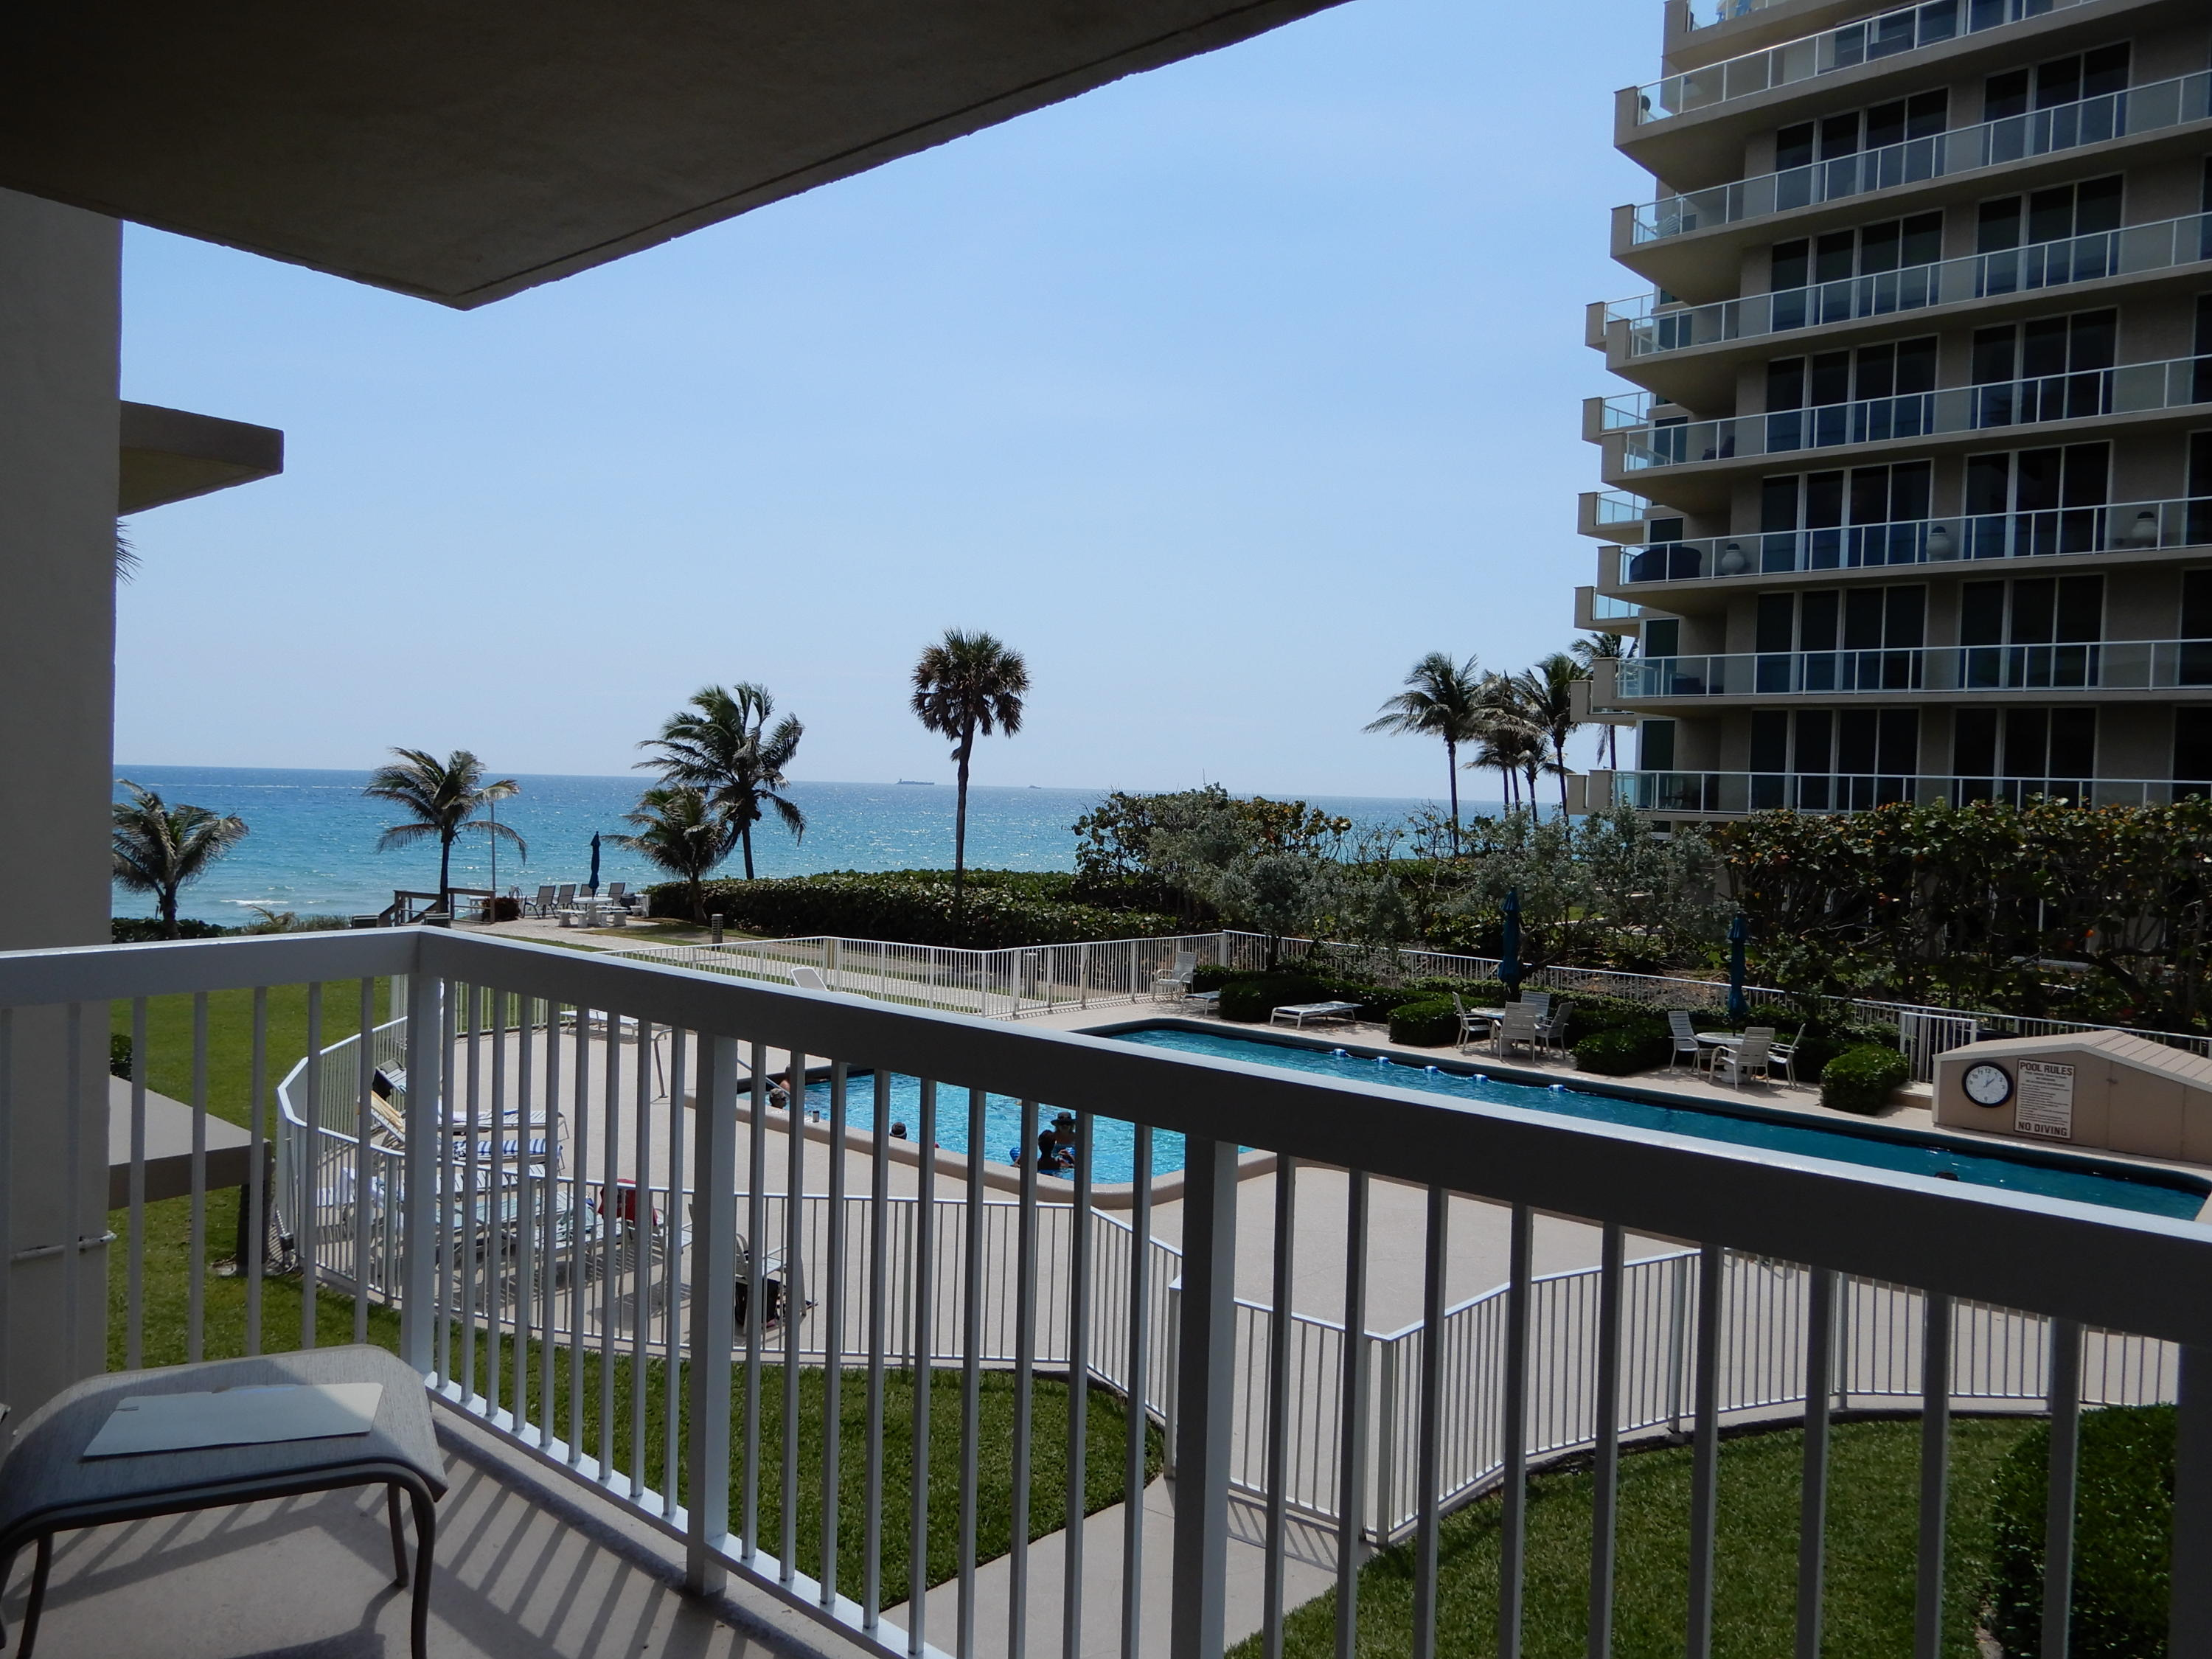 Home for sale in Ocean Hillsboro Condo Hillsboro Beach Florida